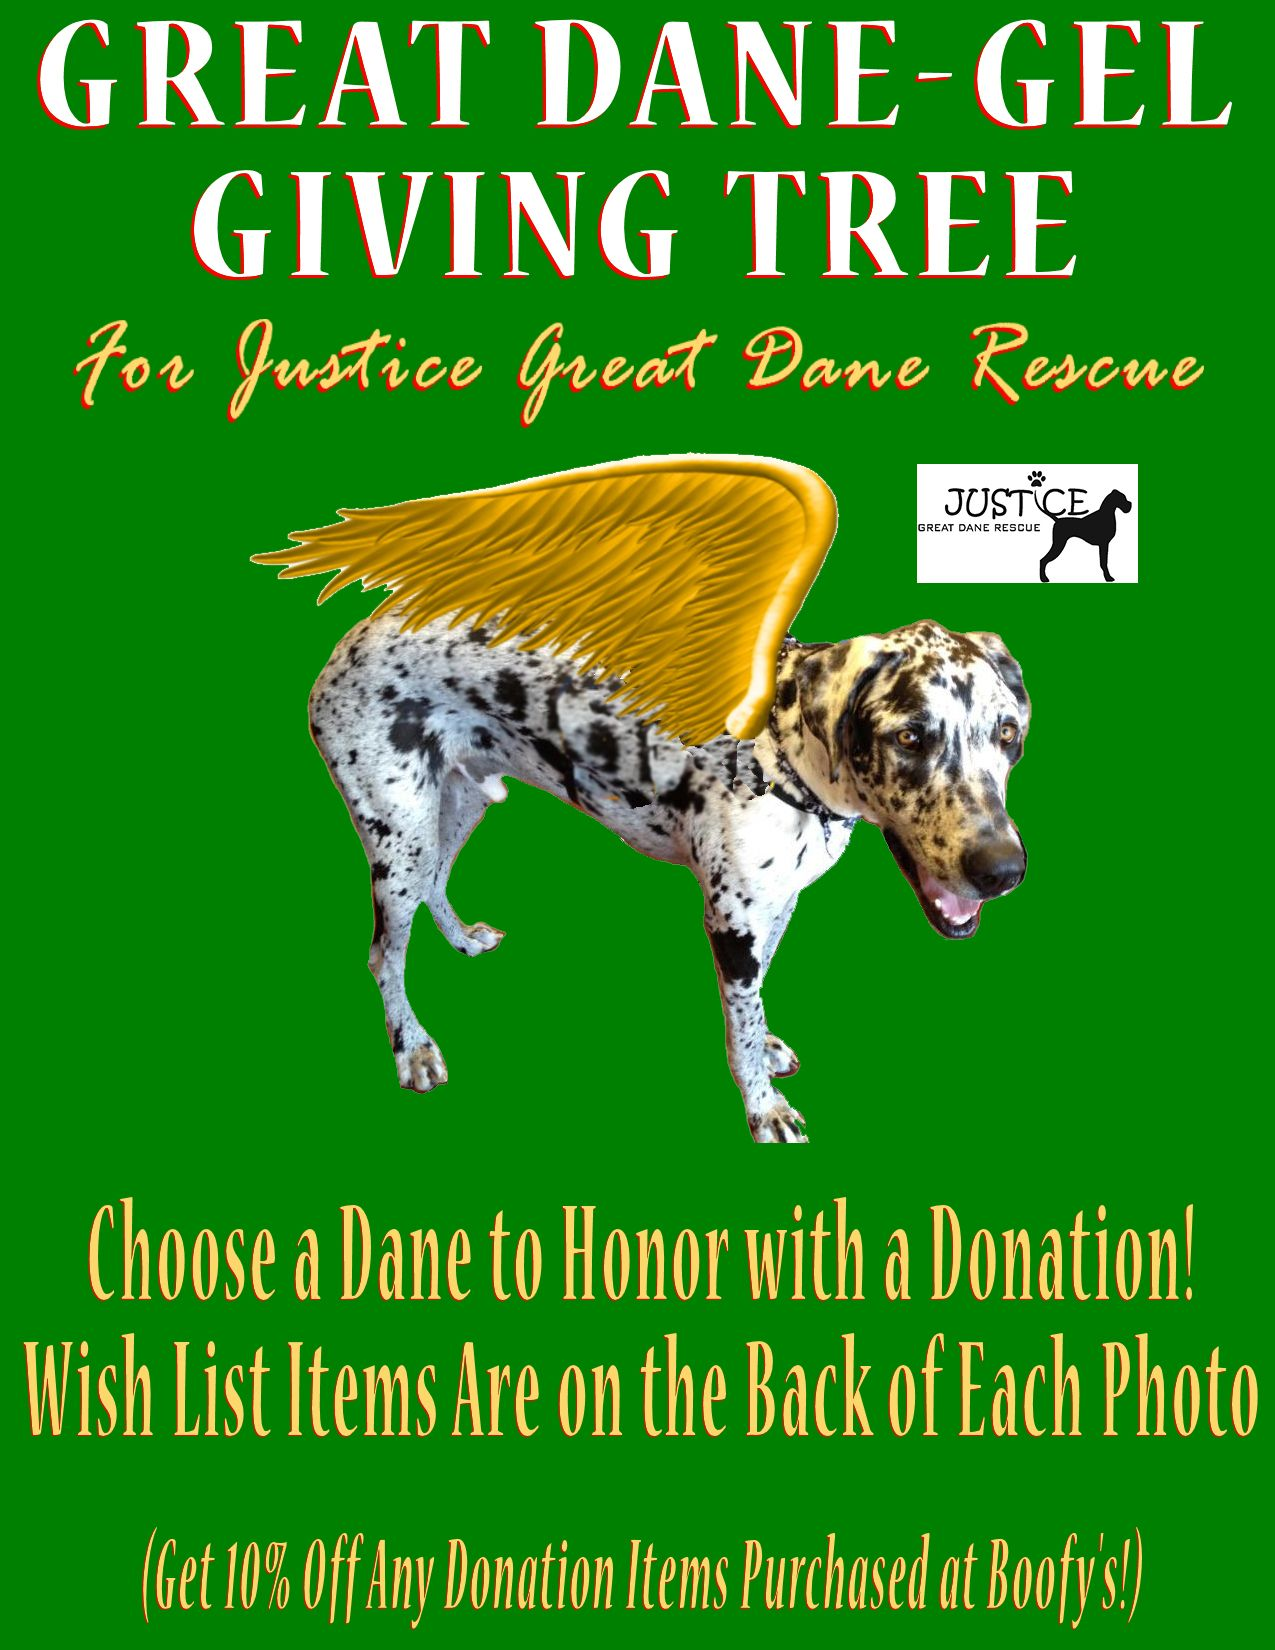 Great Danegel Giving Tree benefiting Justice Great Dane